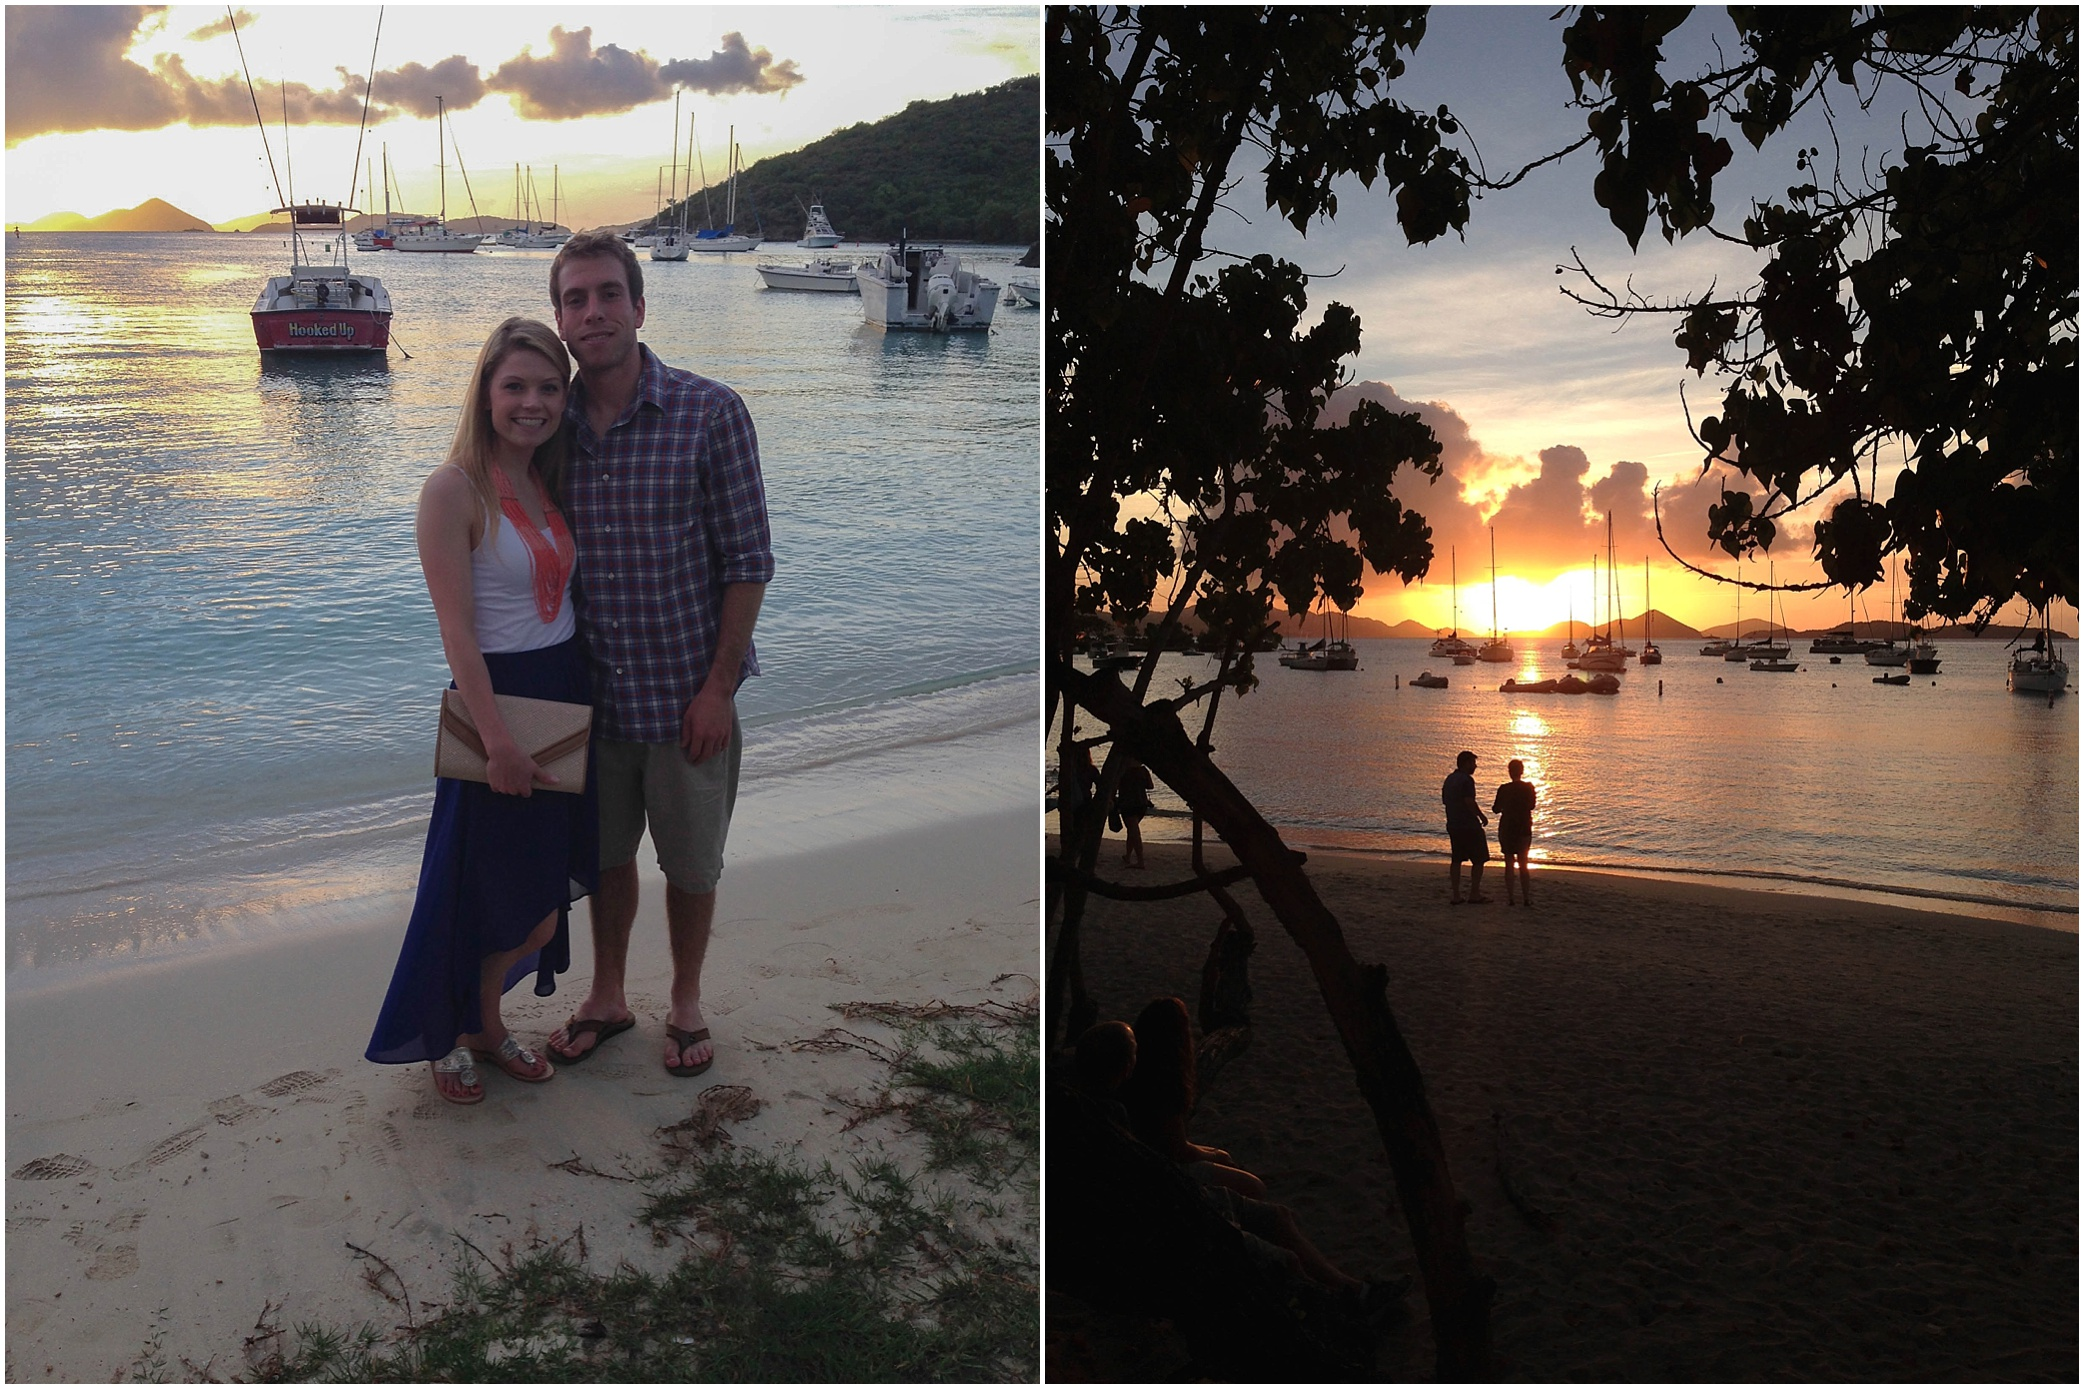 Our first night in Cruz Bay, and our view from dinner! Thank you to the person who offered to take a photo of us! (One of our only non-selfies from the trip!)